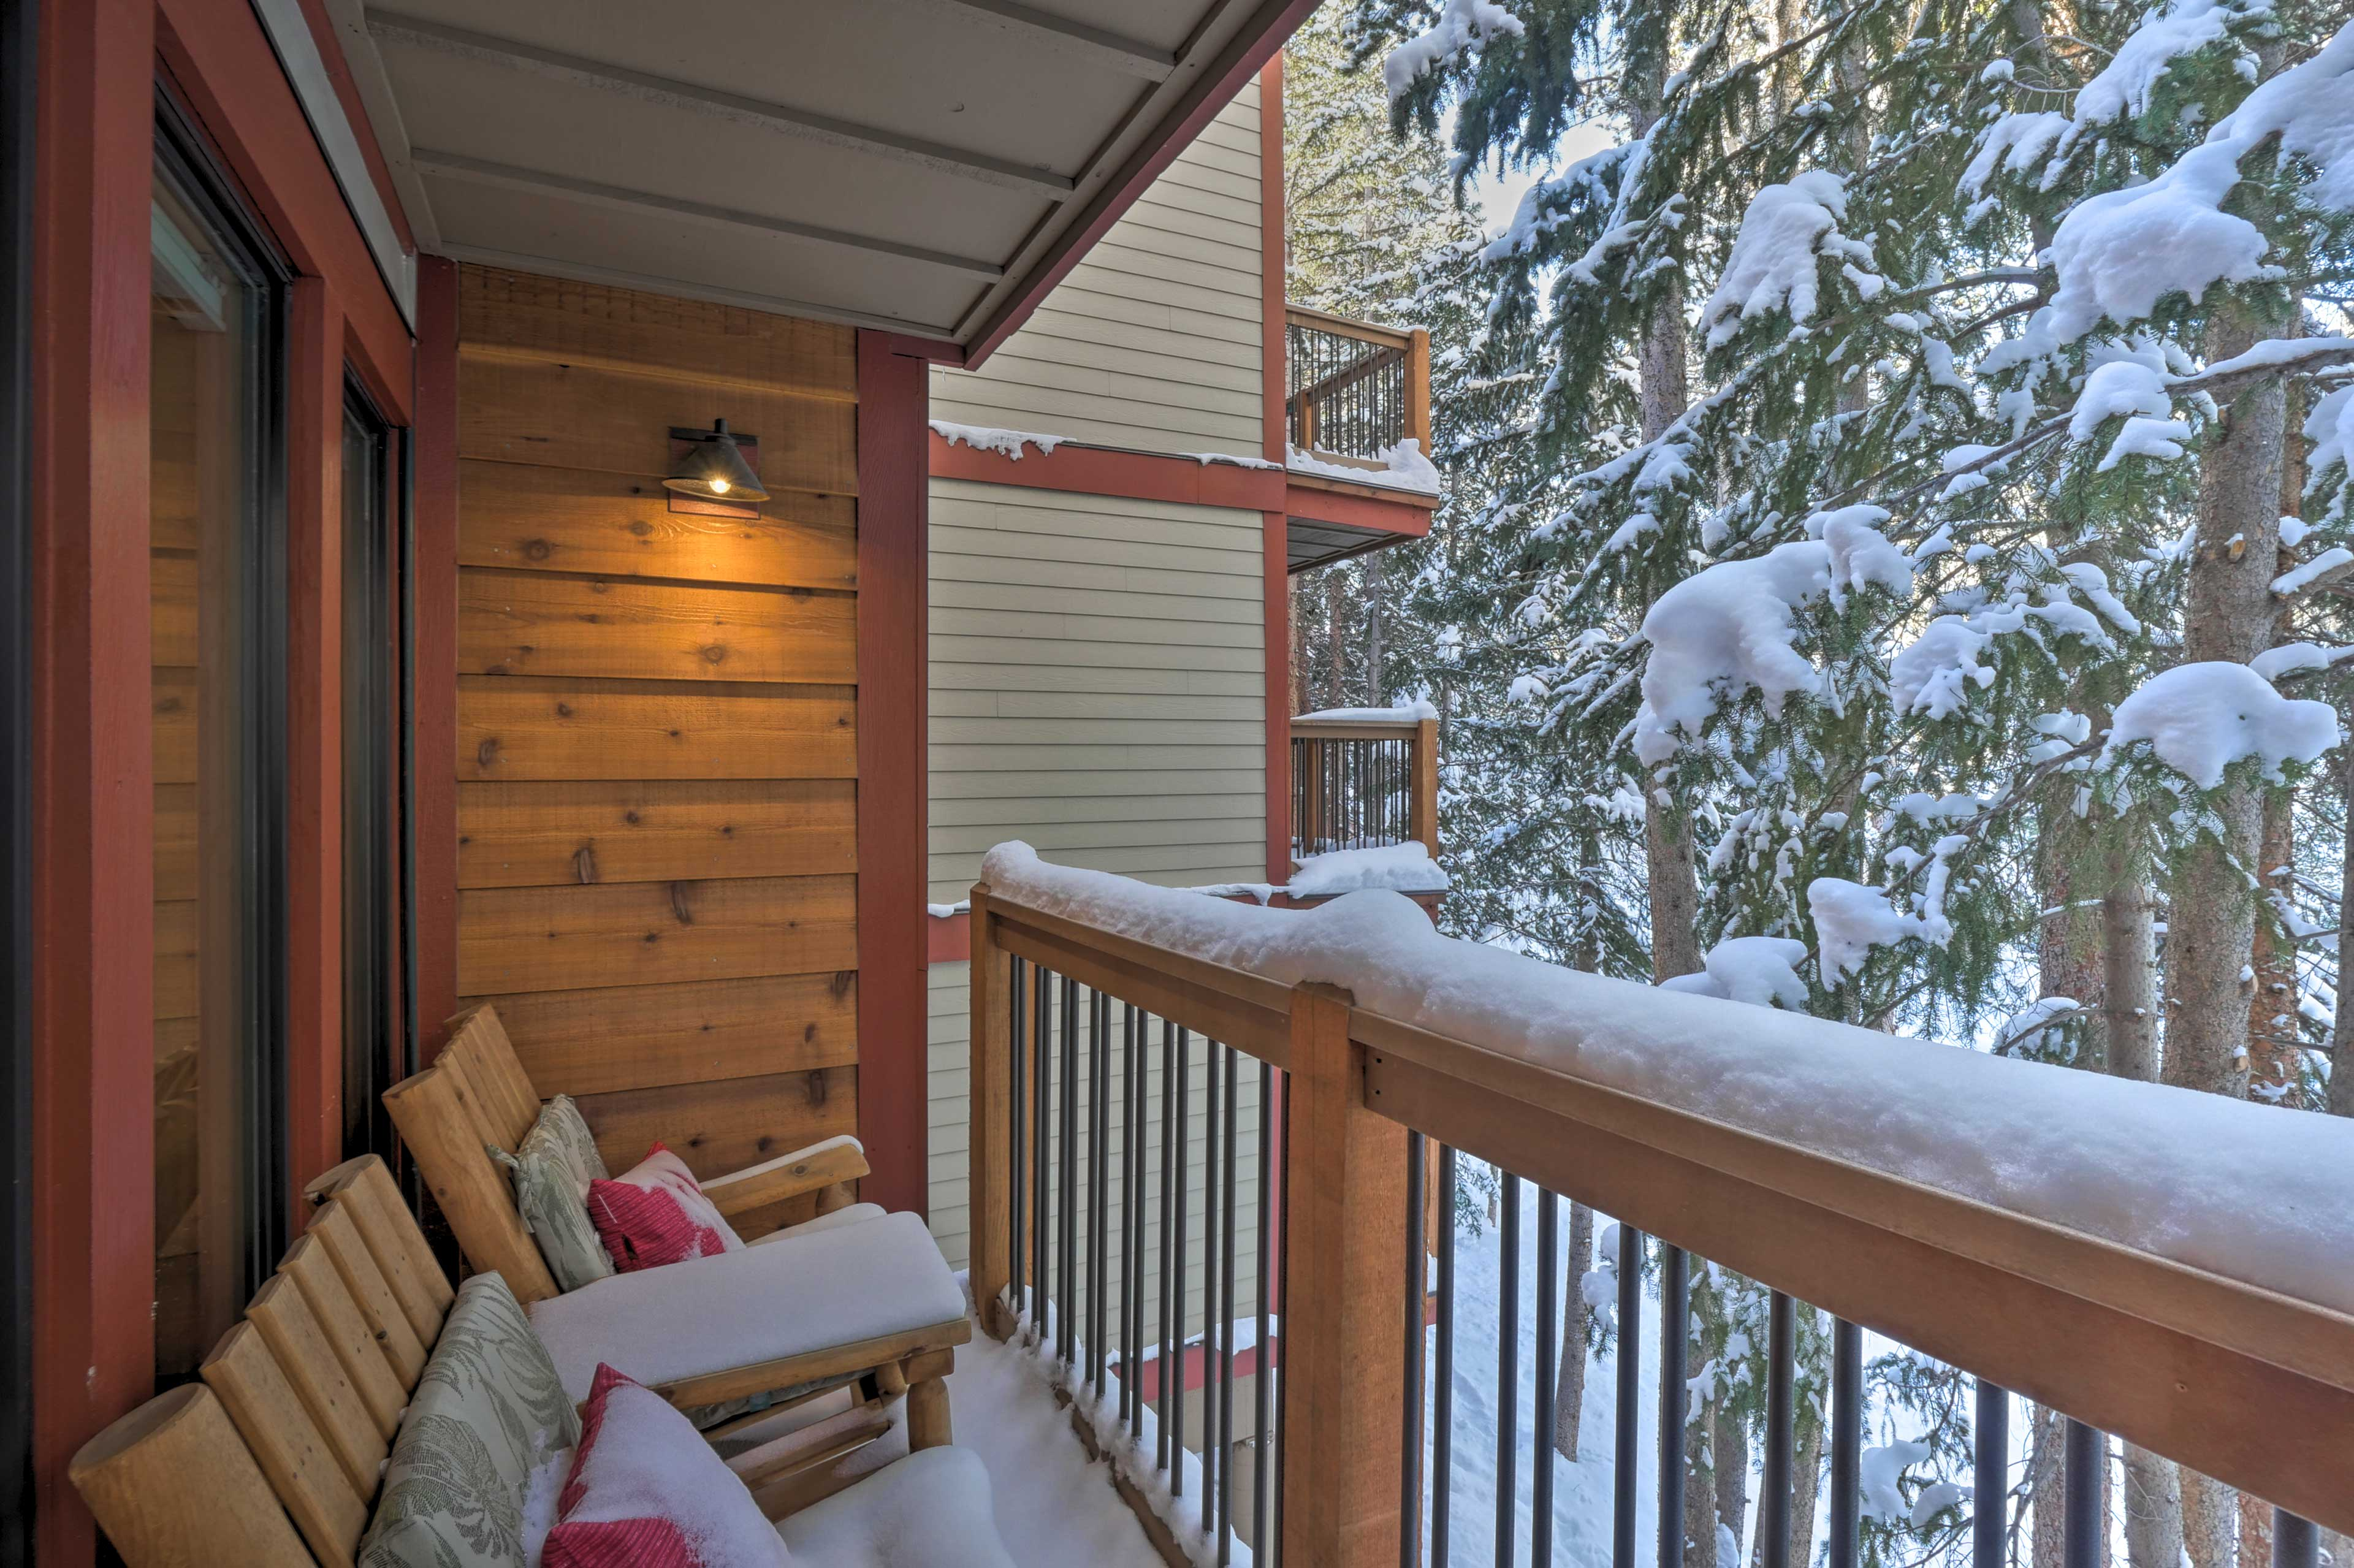 This property transforms into a winter wonderland when the snow falls!